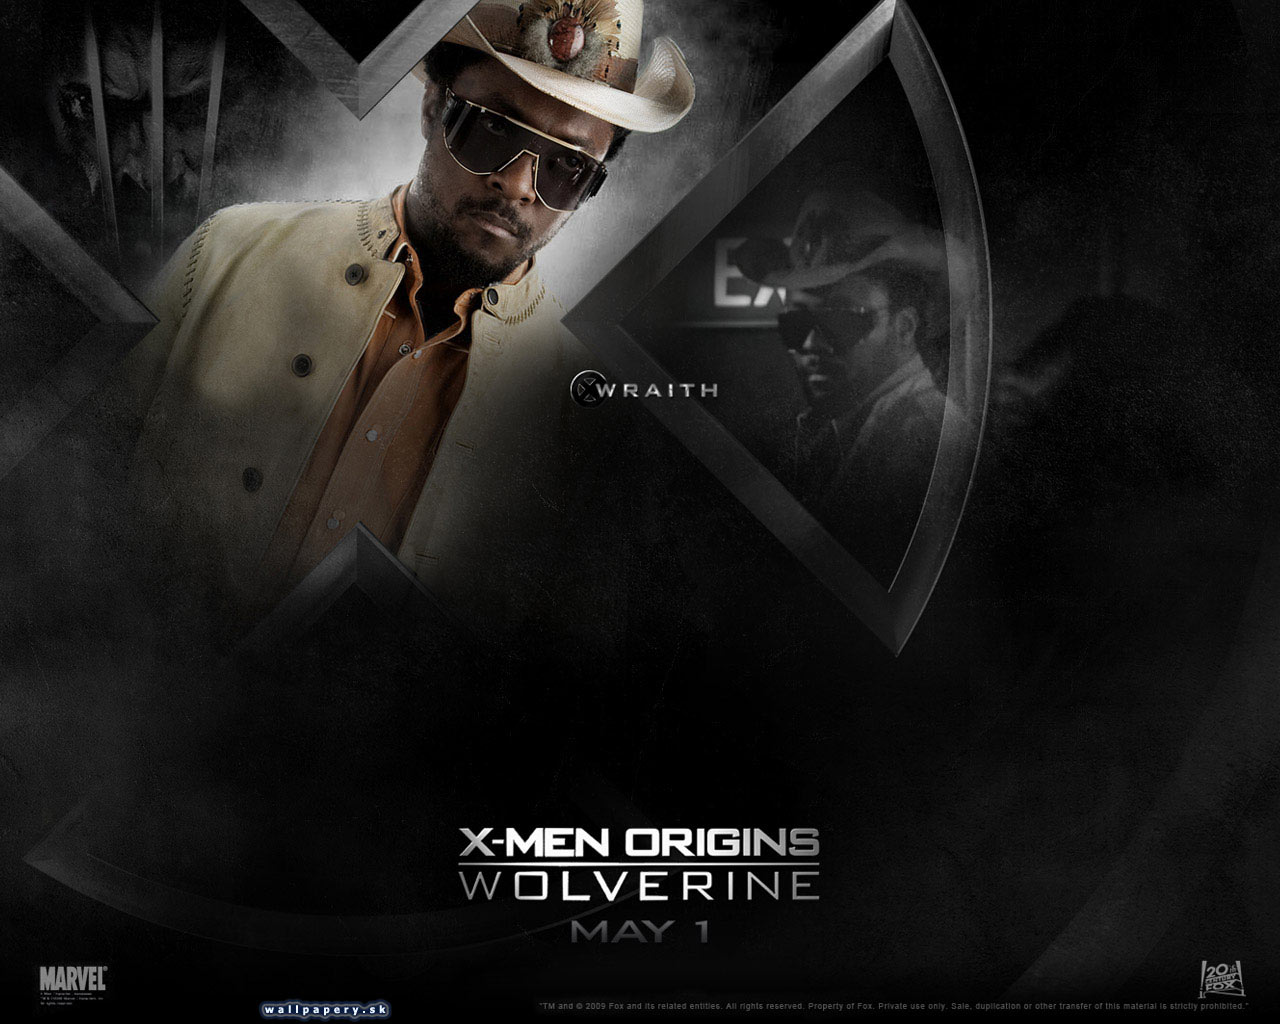 X-Men Origins: Wolverine - wallpaper 8